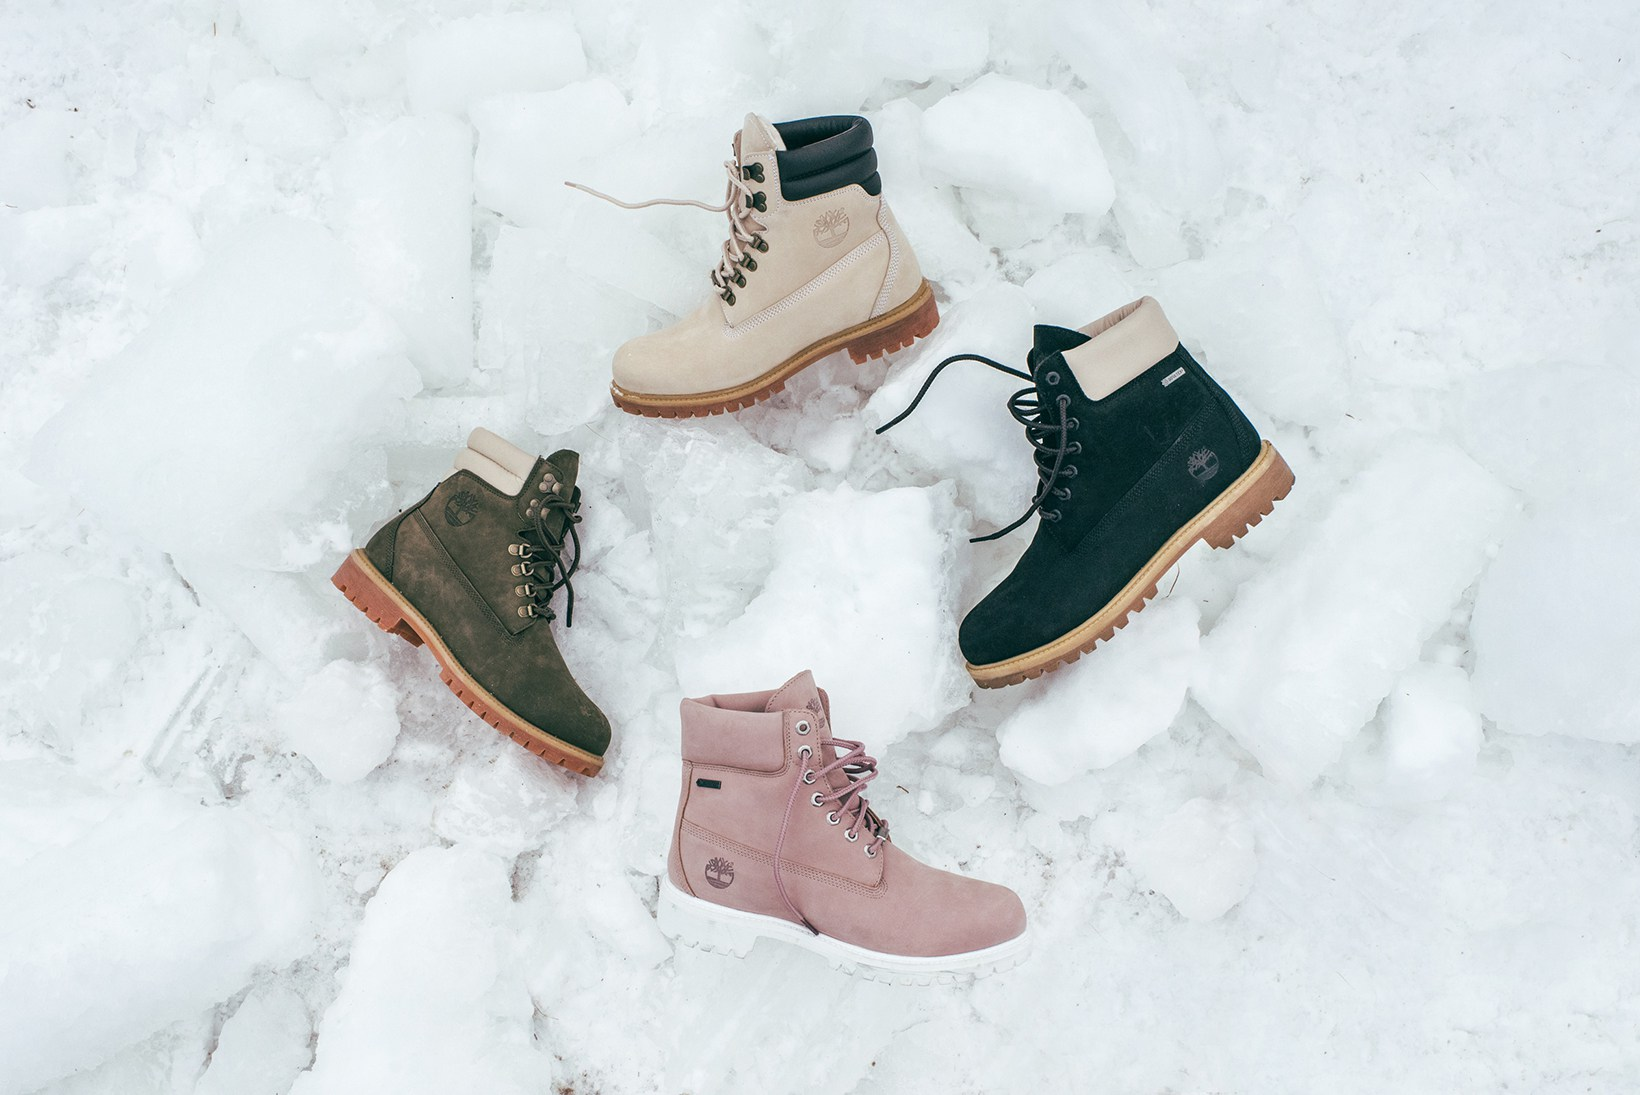 Le pack Timberland x Ronnie Fieg pour braver le grand froid avec style